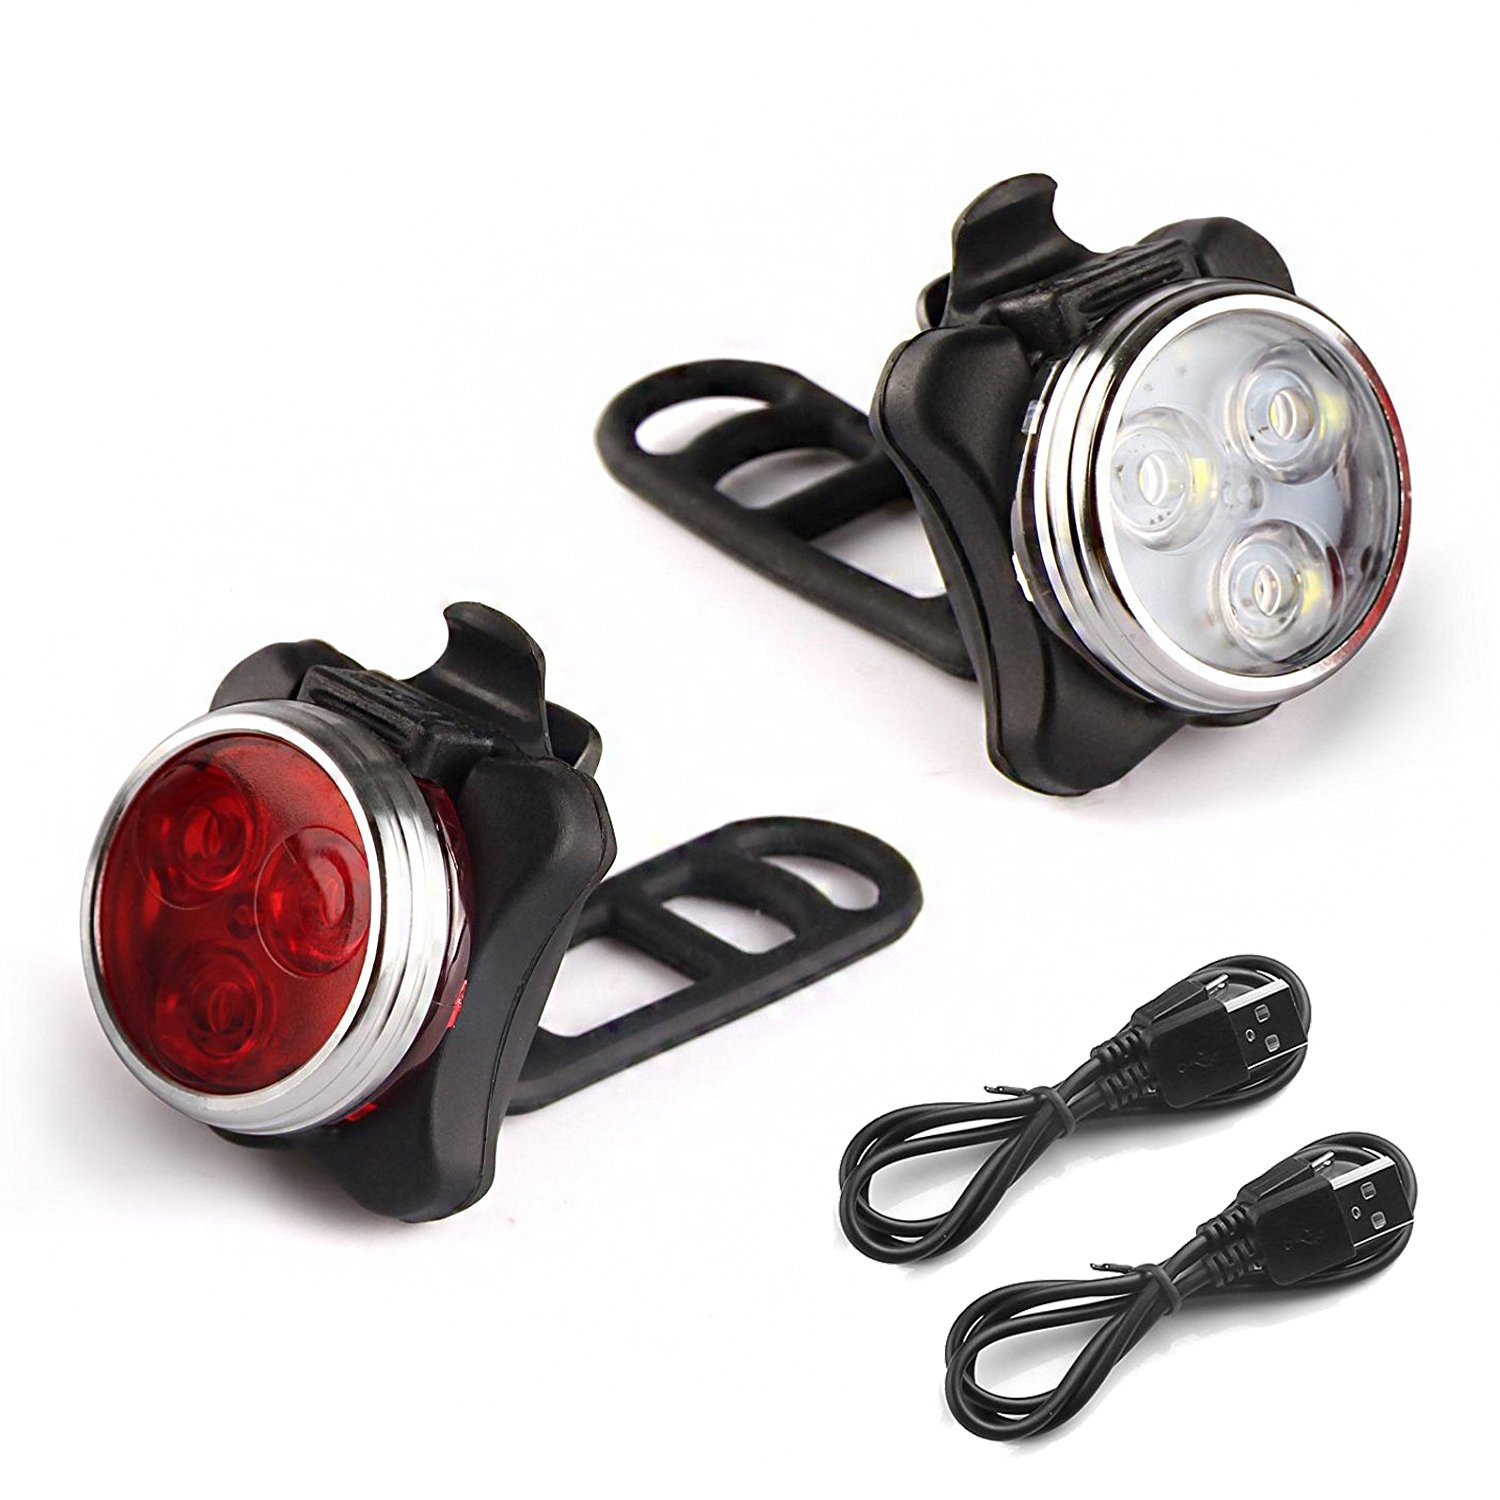 Rantizon Bike Light Set Bright LED Bicycle Lights Set Front and Rear, 4 Light Mode Options, 650mah Lithium Battery, USB Rechargeable and Fits All Bikes for Cycling, Hiking, Camping, Outdoors